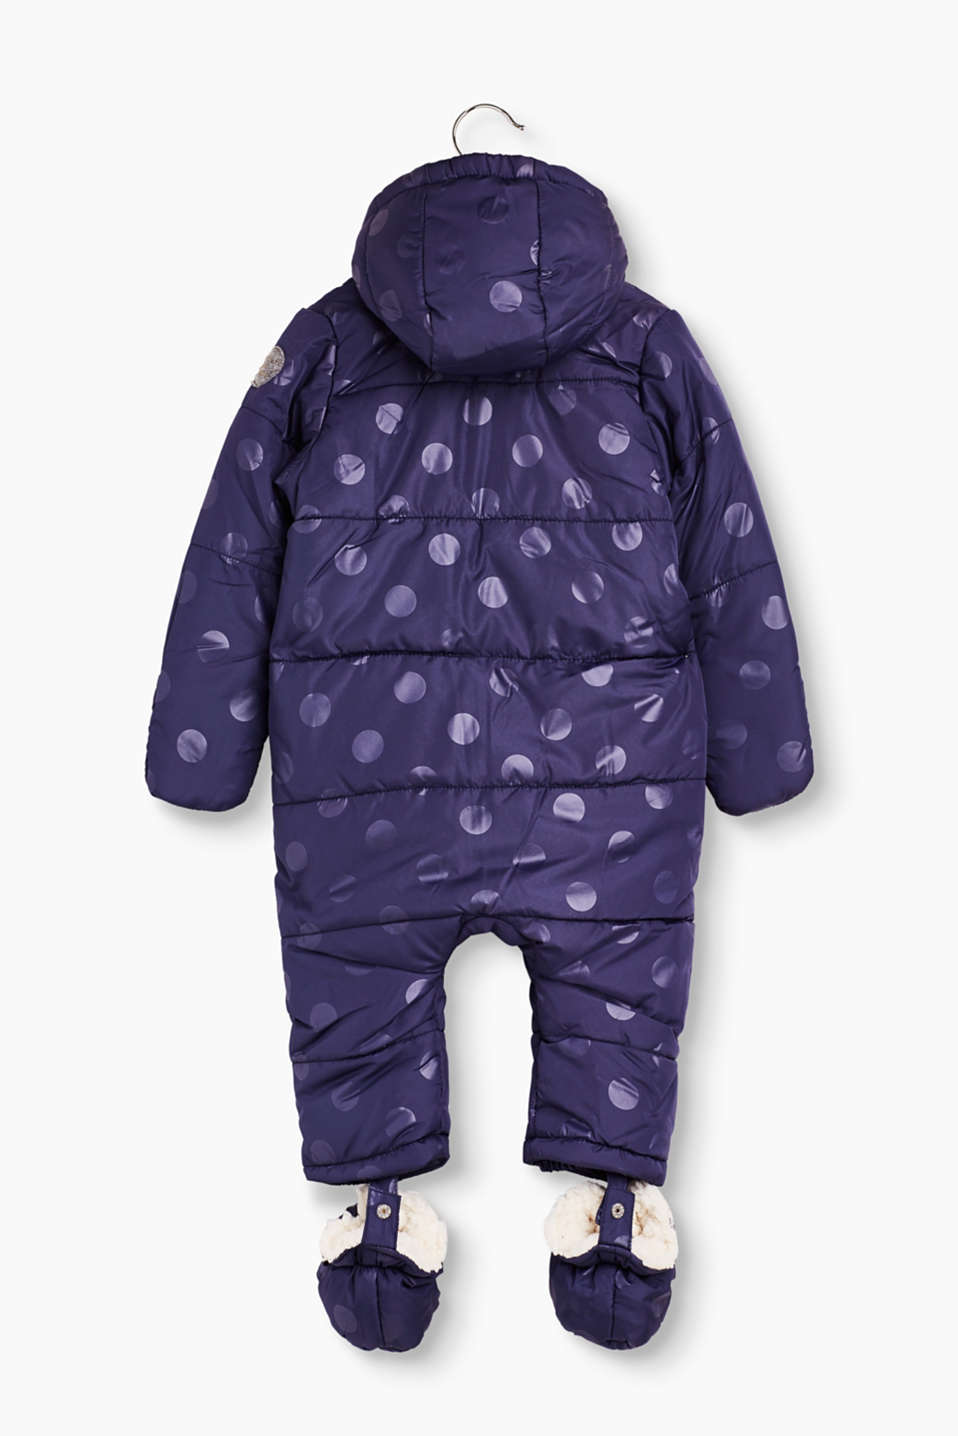 Padded snow suit with polka dot print